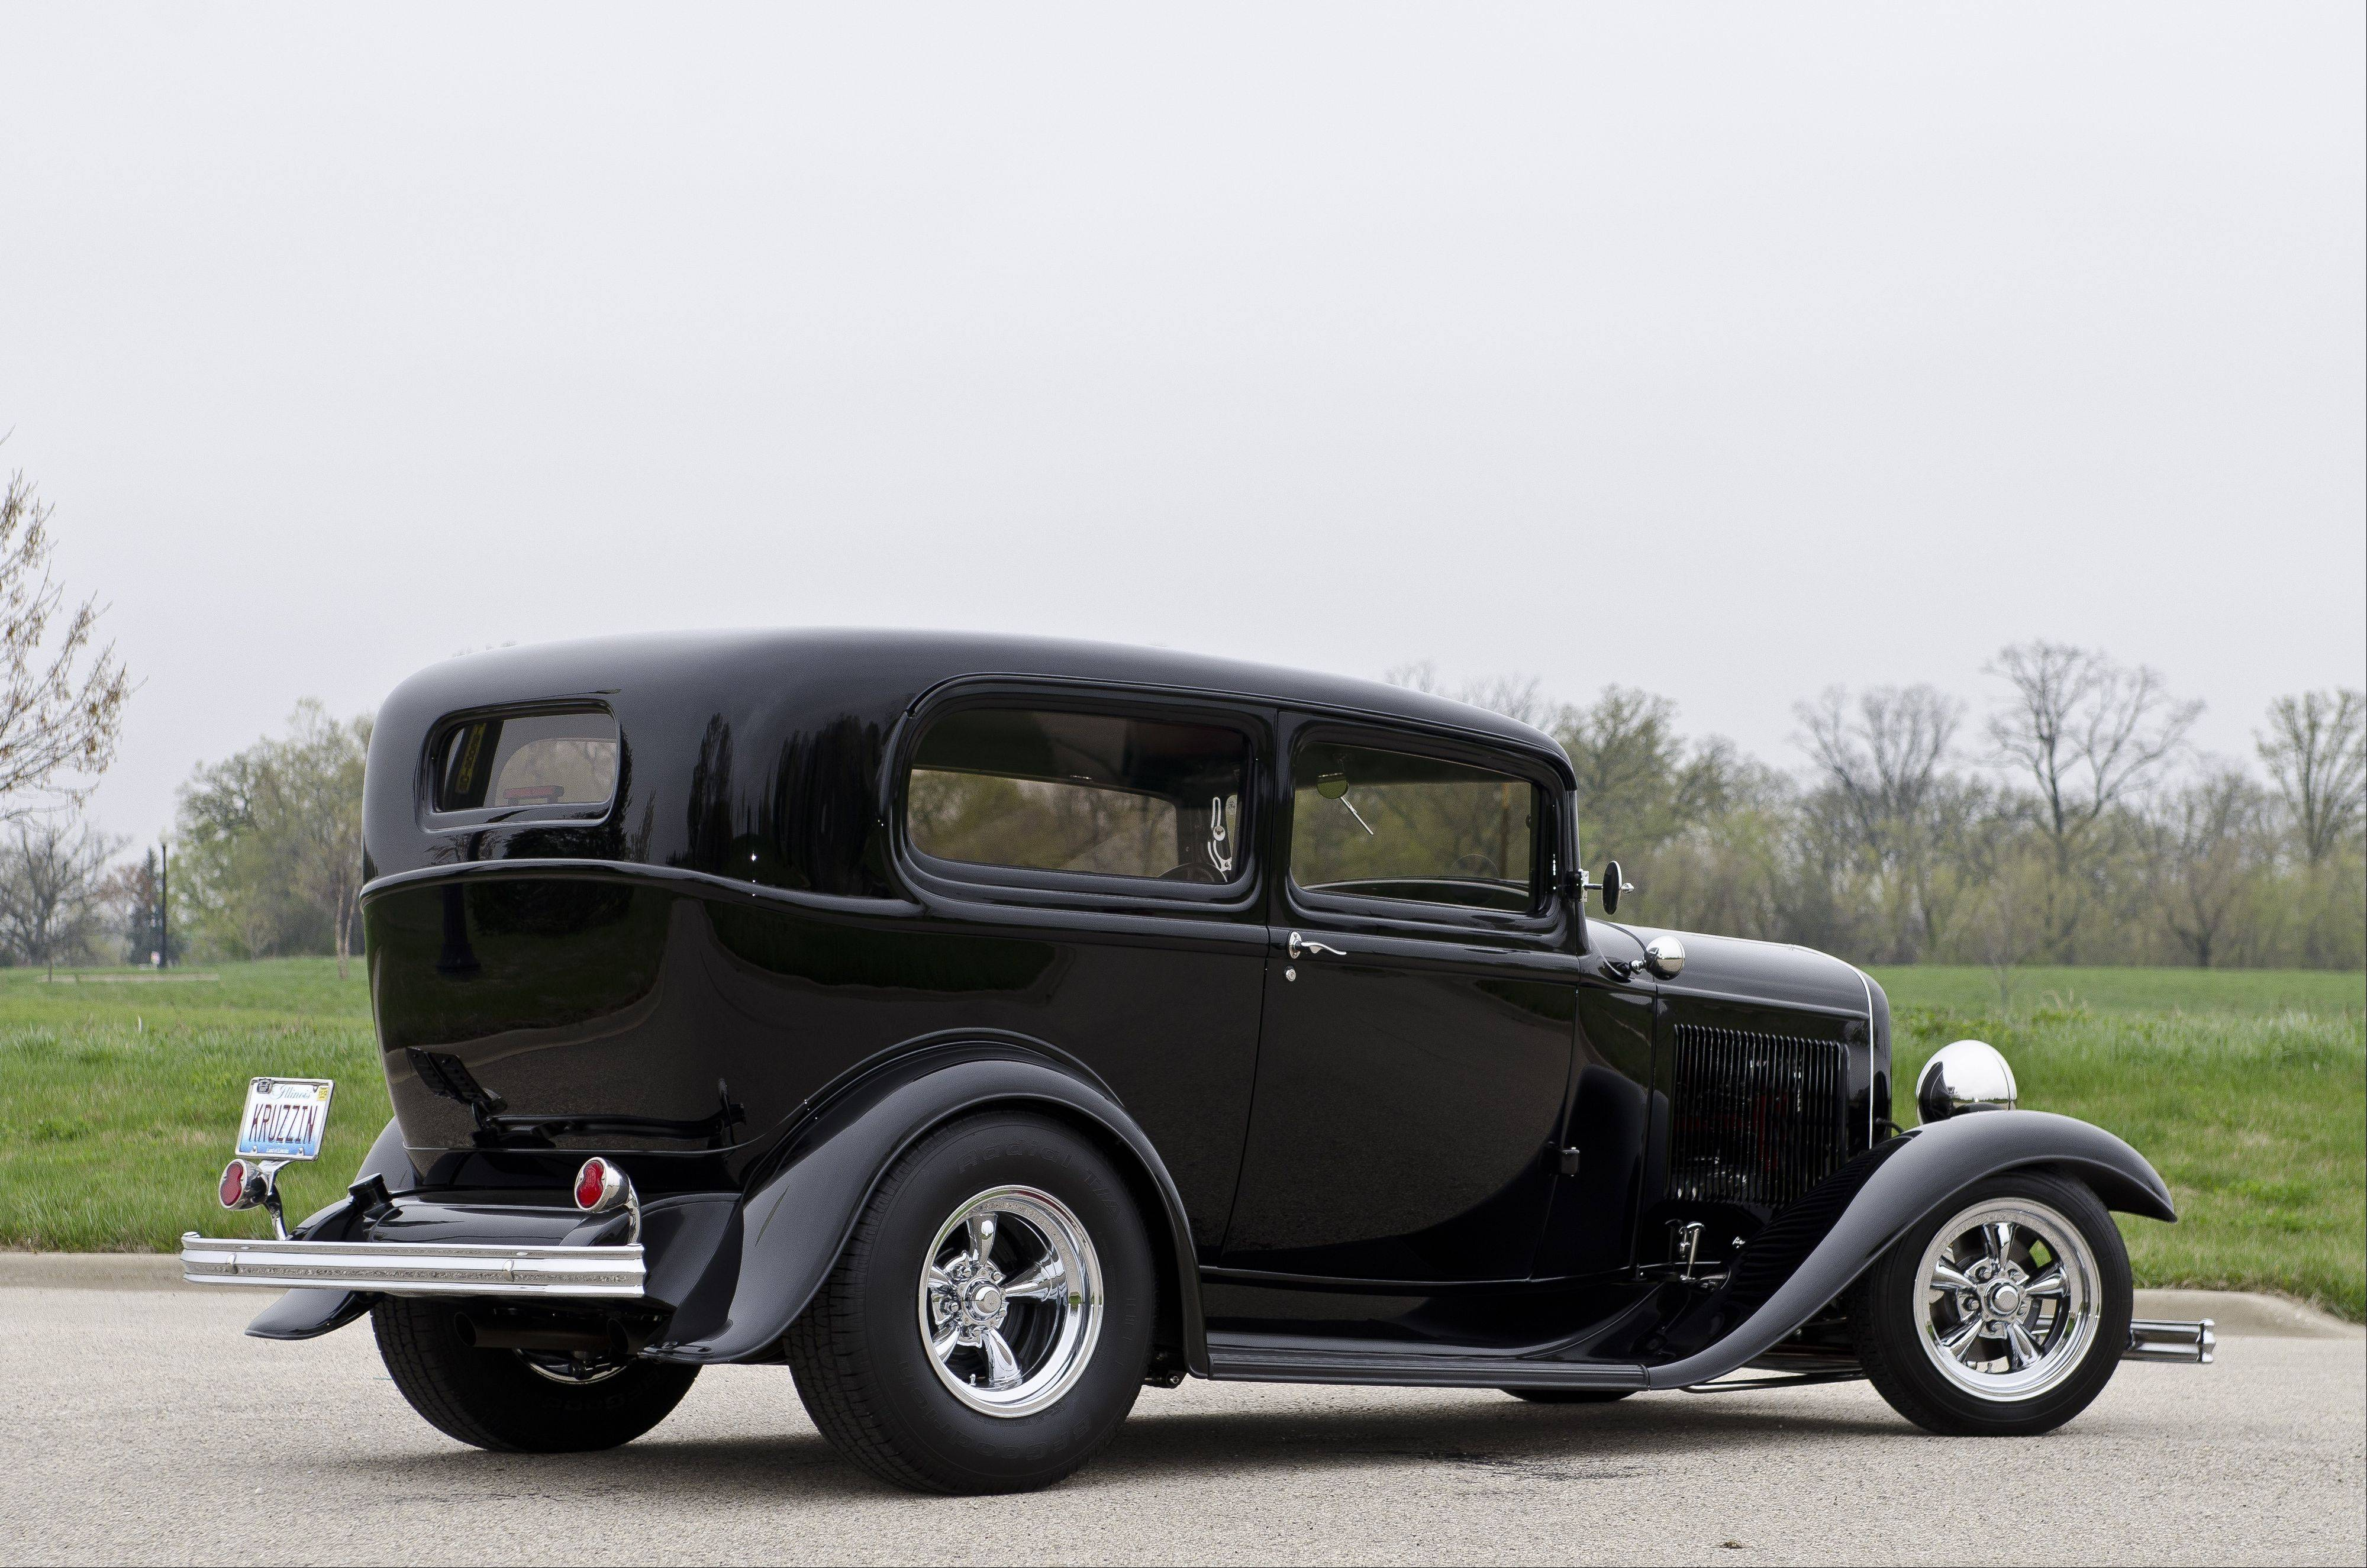 When Jensen drove over a piece of steel, damaging a rear wheel and fender, he decided to rebuild his 1932 Ford Tudor once again.